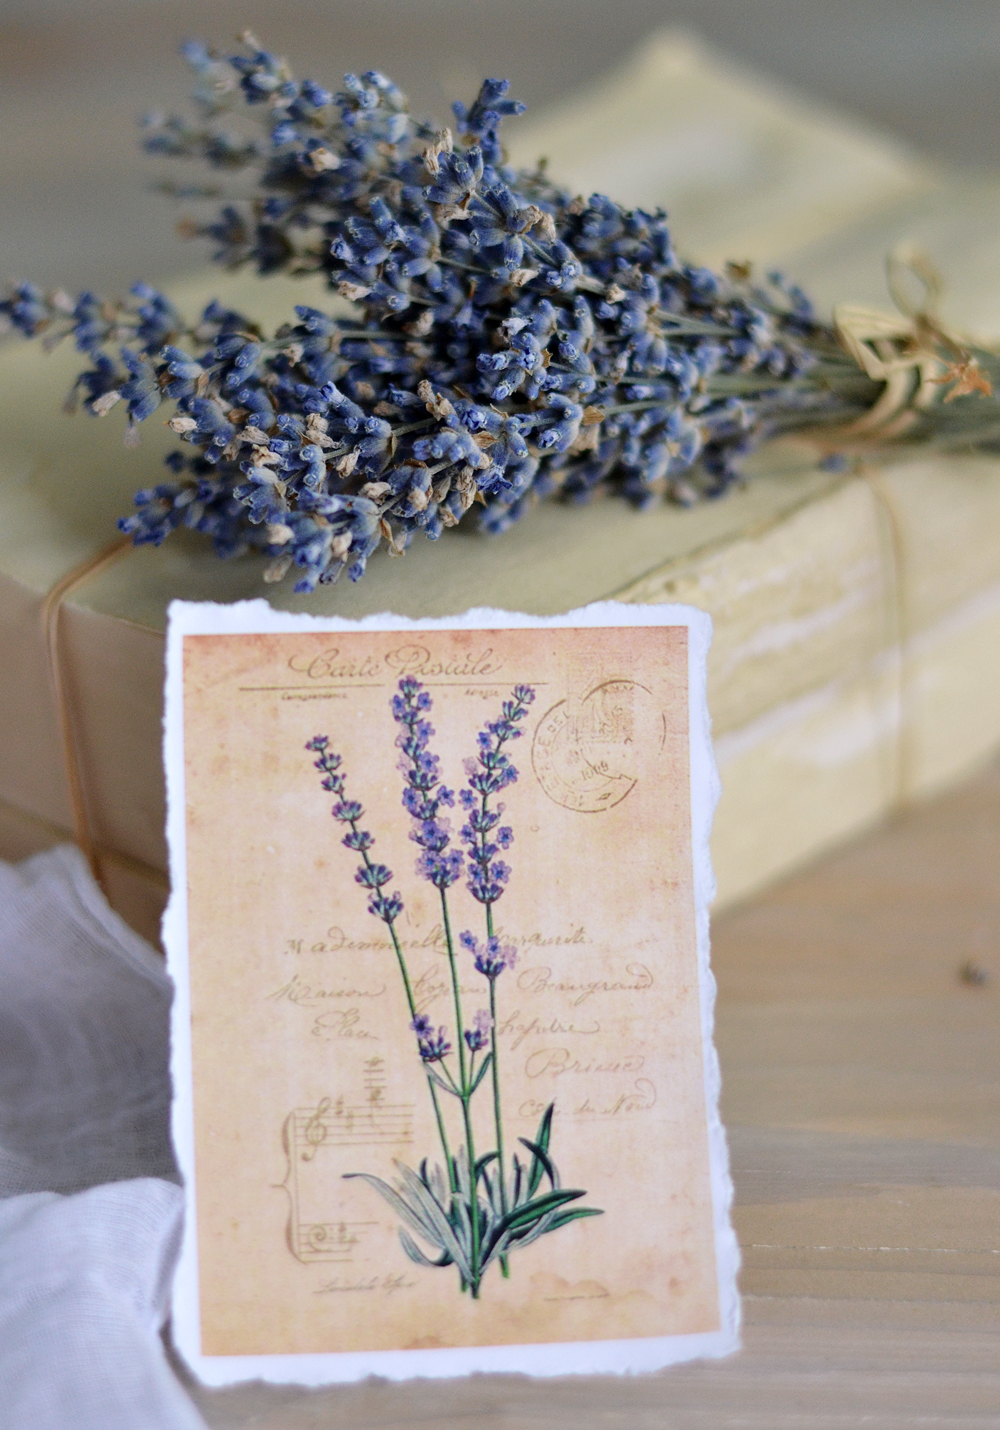 Hydrangea and Lavender vintage tags with torn edges - by Dreams Factory #diy #crafts #French #lavender #hydrangeas